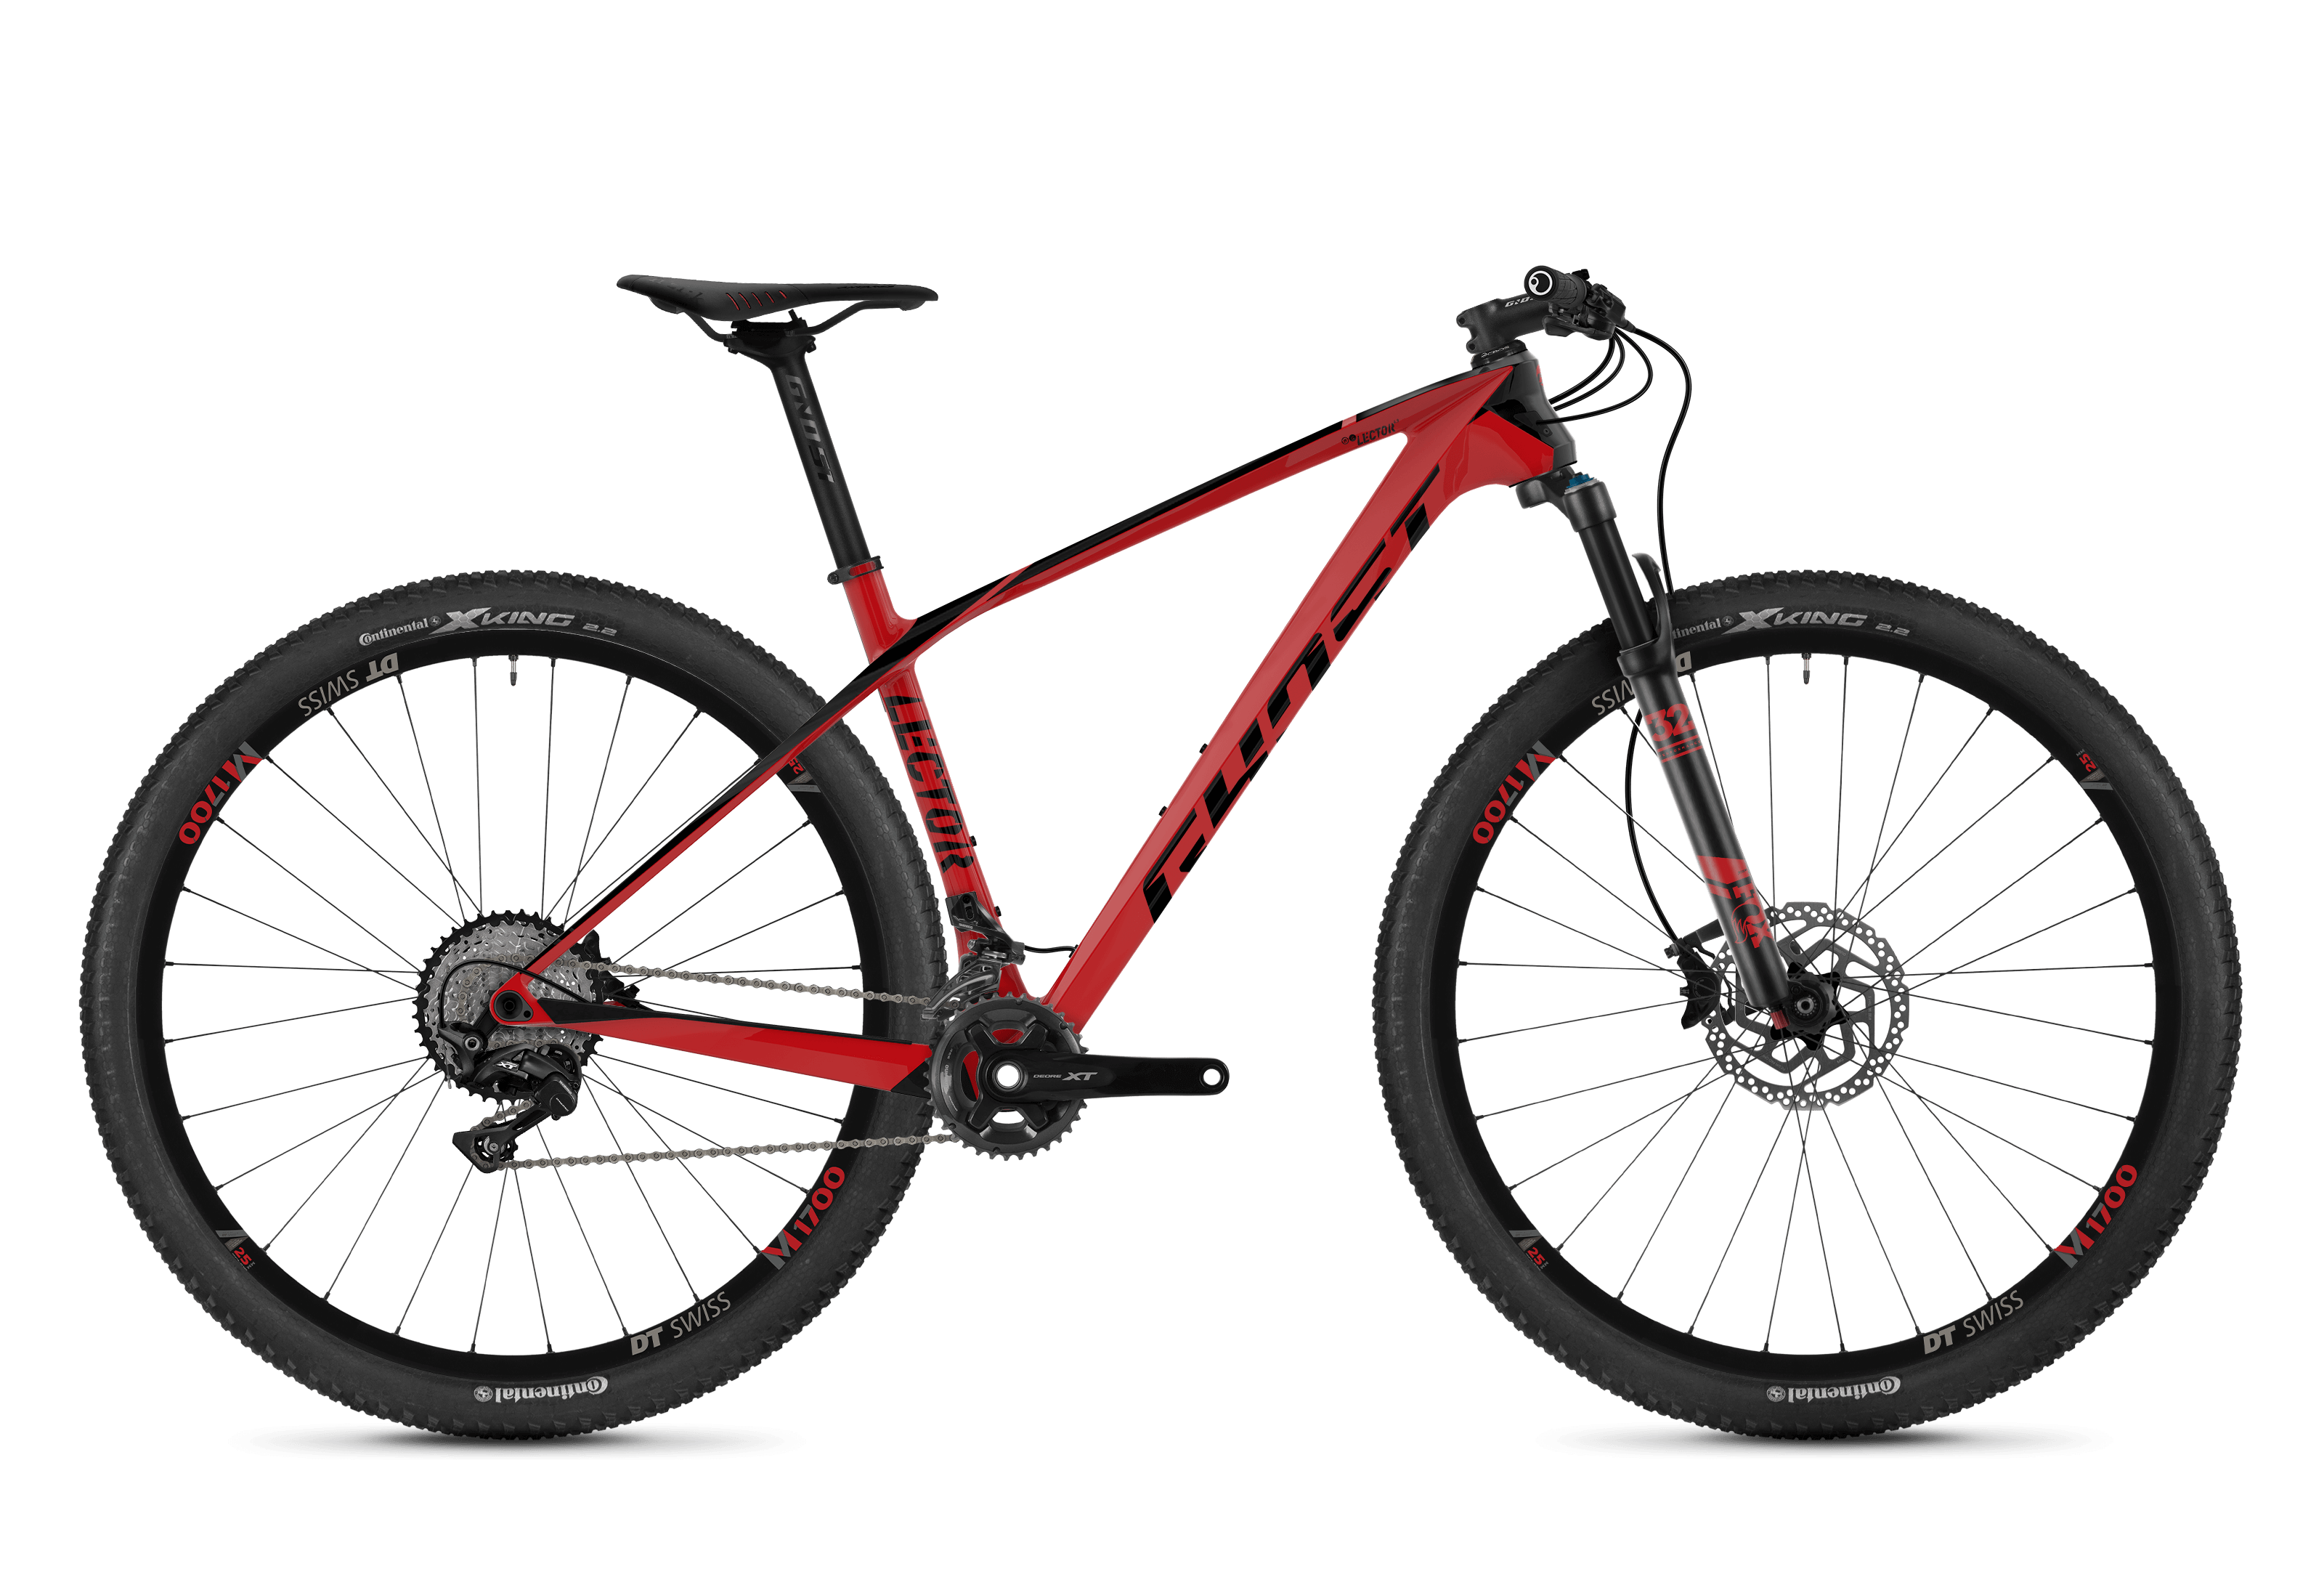 Horské kolo GHOST Lector 6.9 LC red / black XS 2018